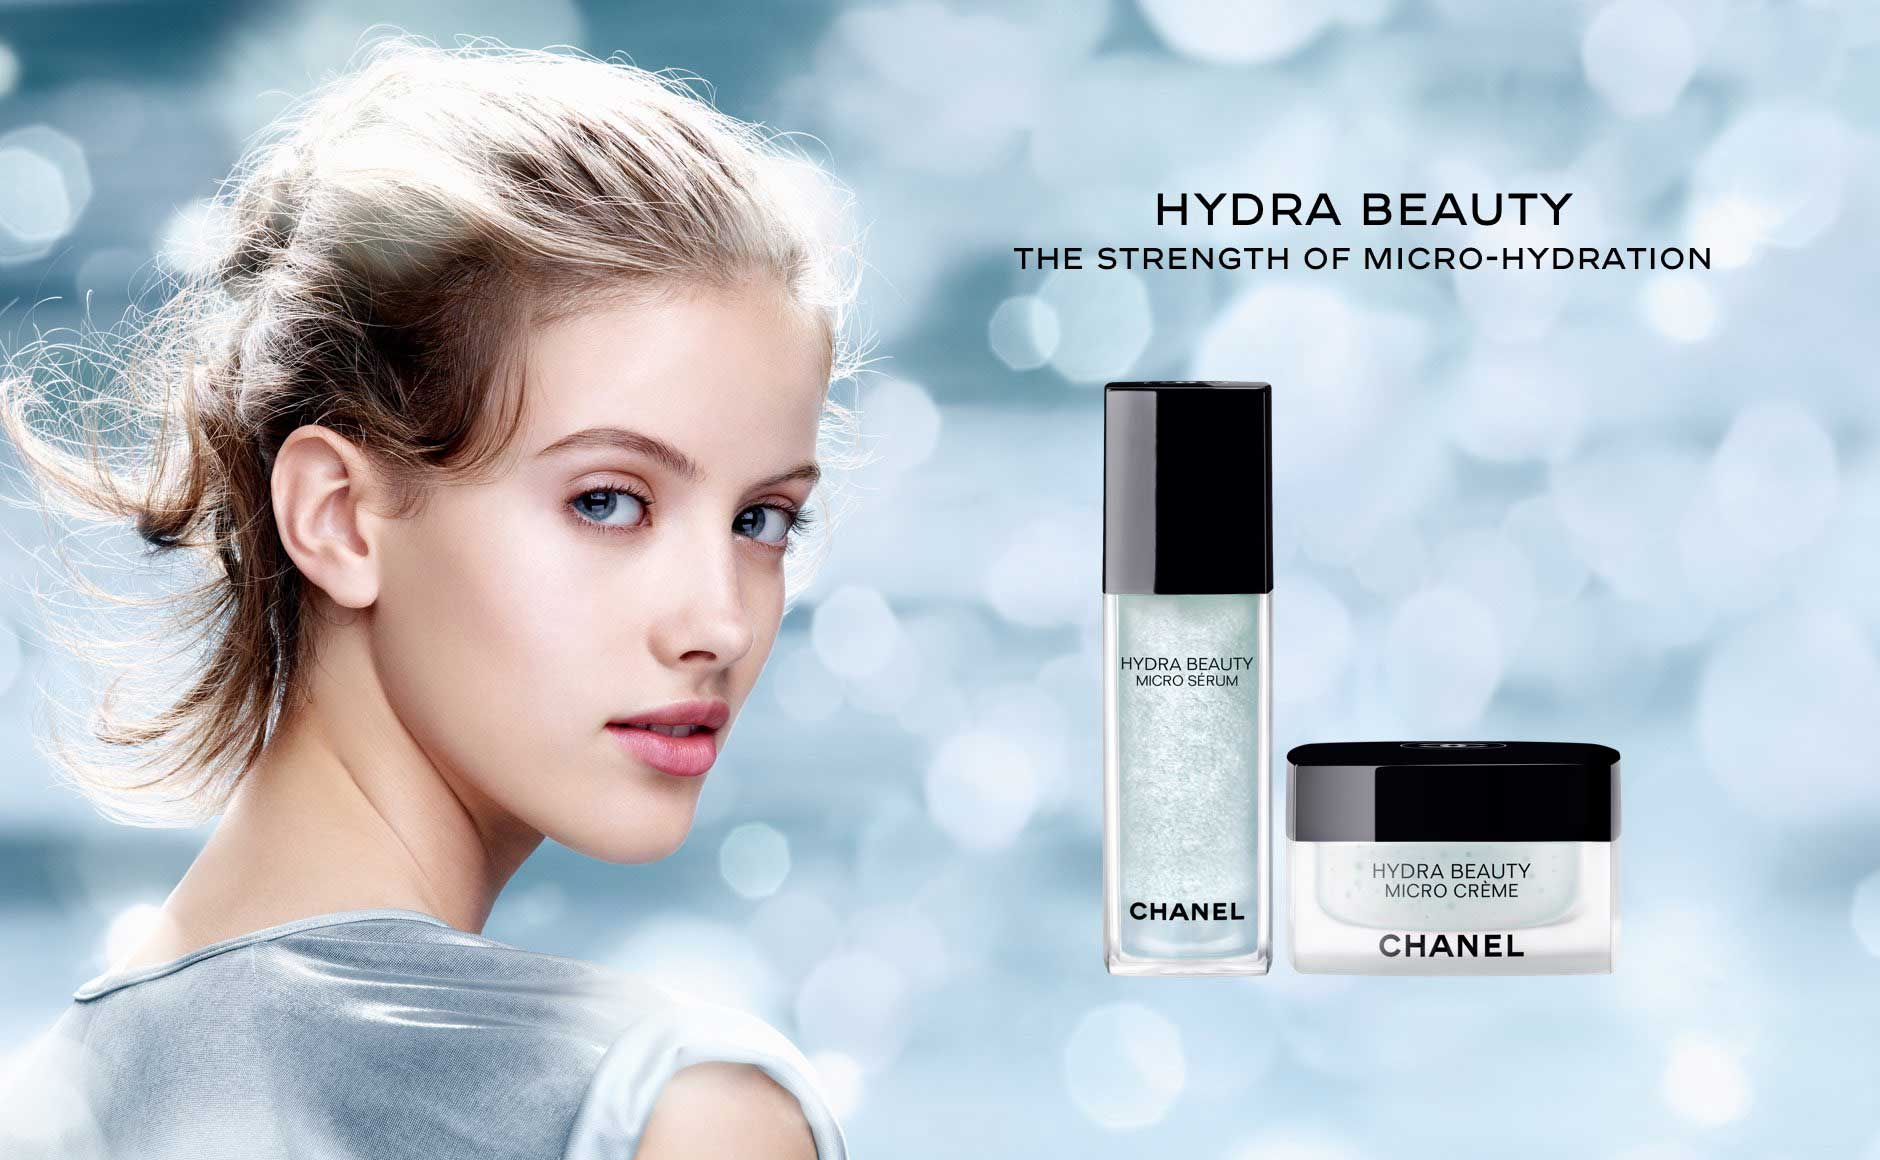 Hydra Beauty - The Strength Of Micro-Hydration